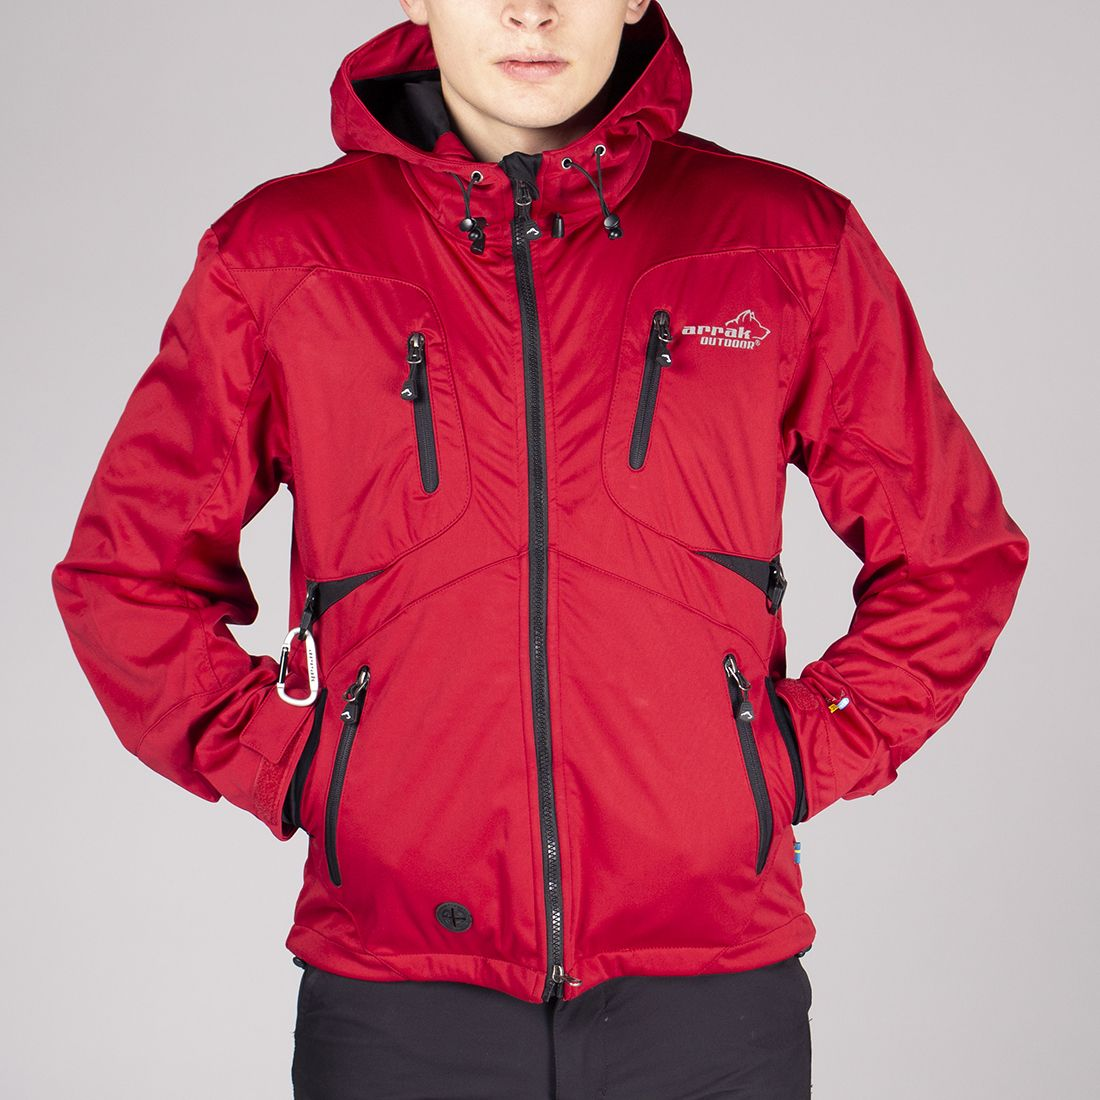 Arrak Akka Softshelljacket  UNISEX red XS